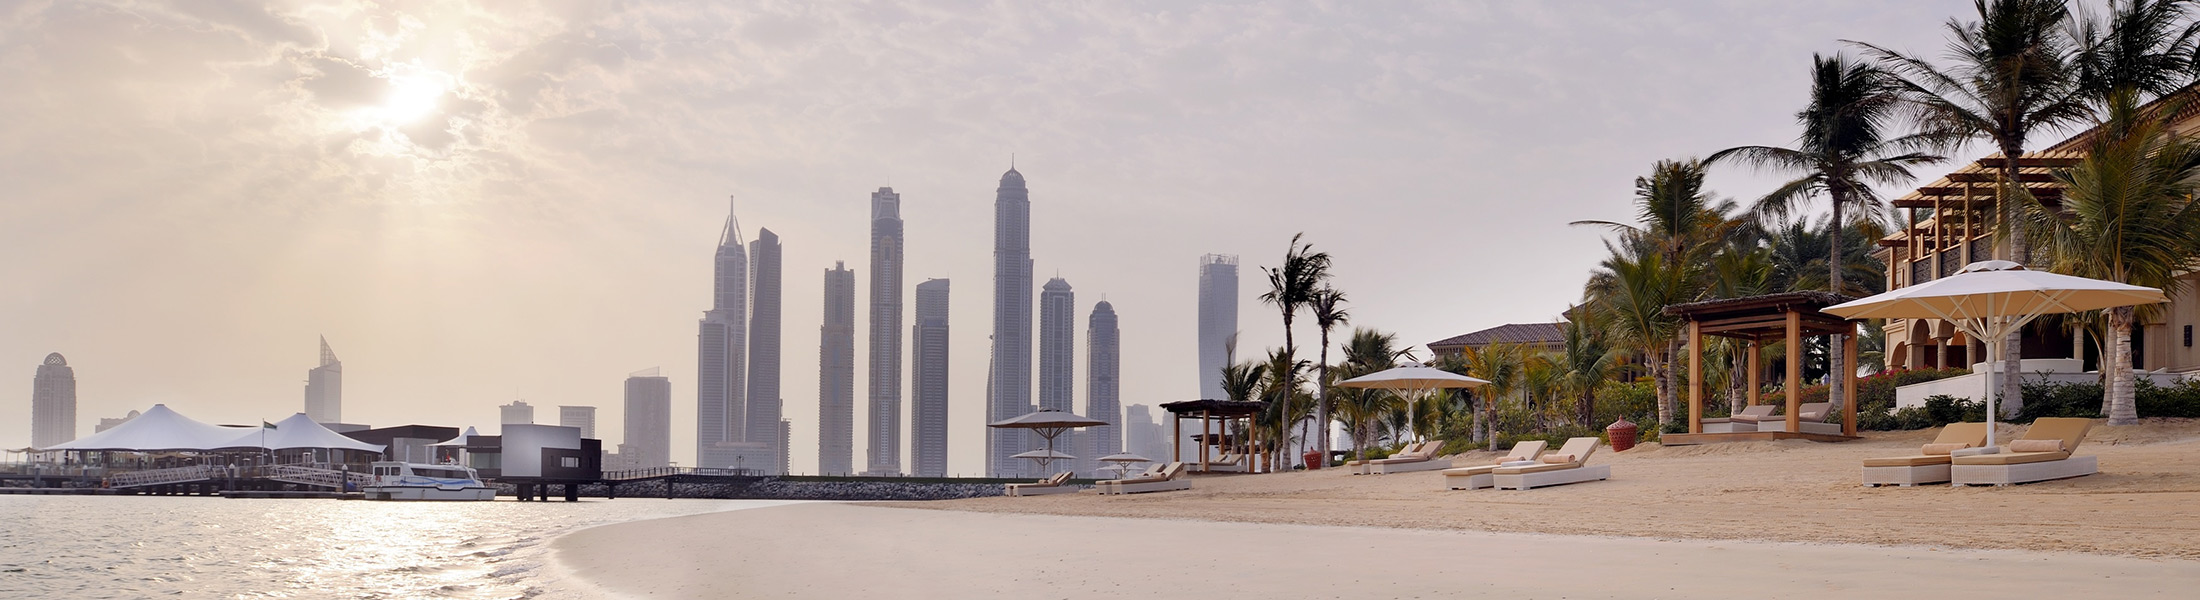 Dubai skyline from the beach at Manor House at One&Only The Palm